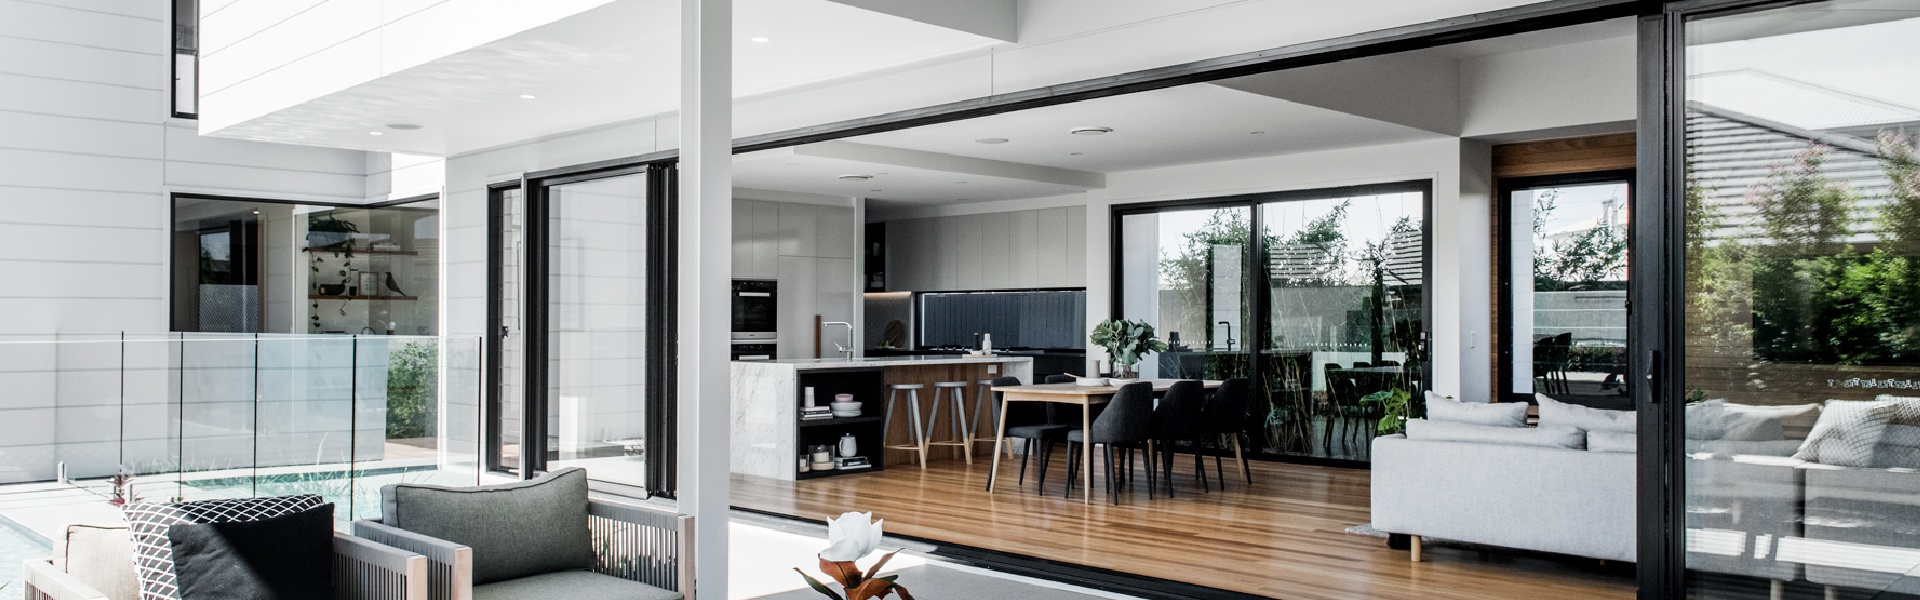 Kalka - House and Land Packages Brisbane